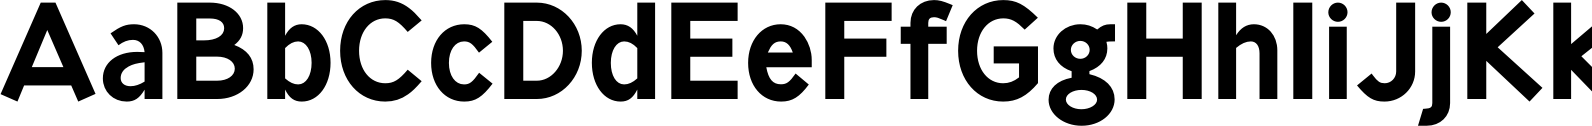 Seed Extra Bold Font